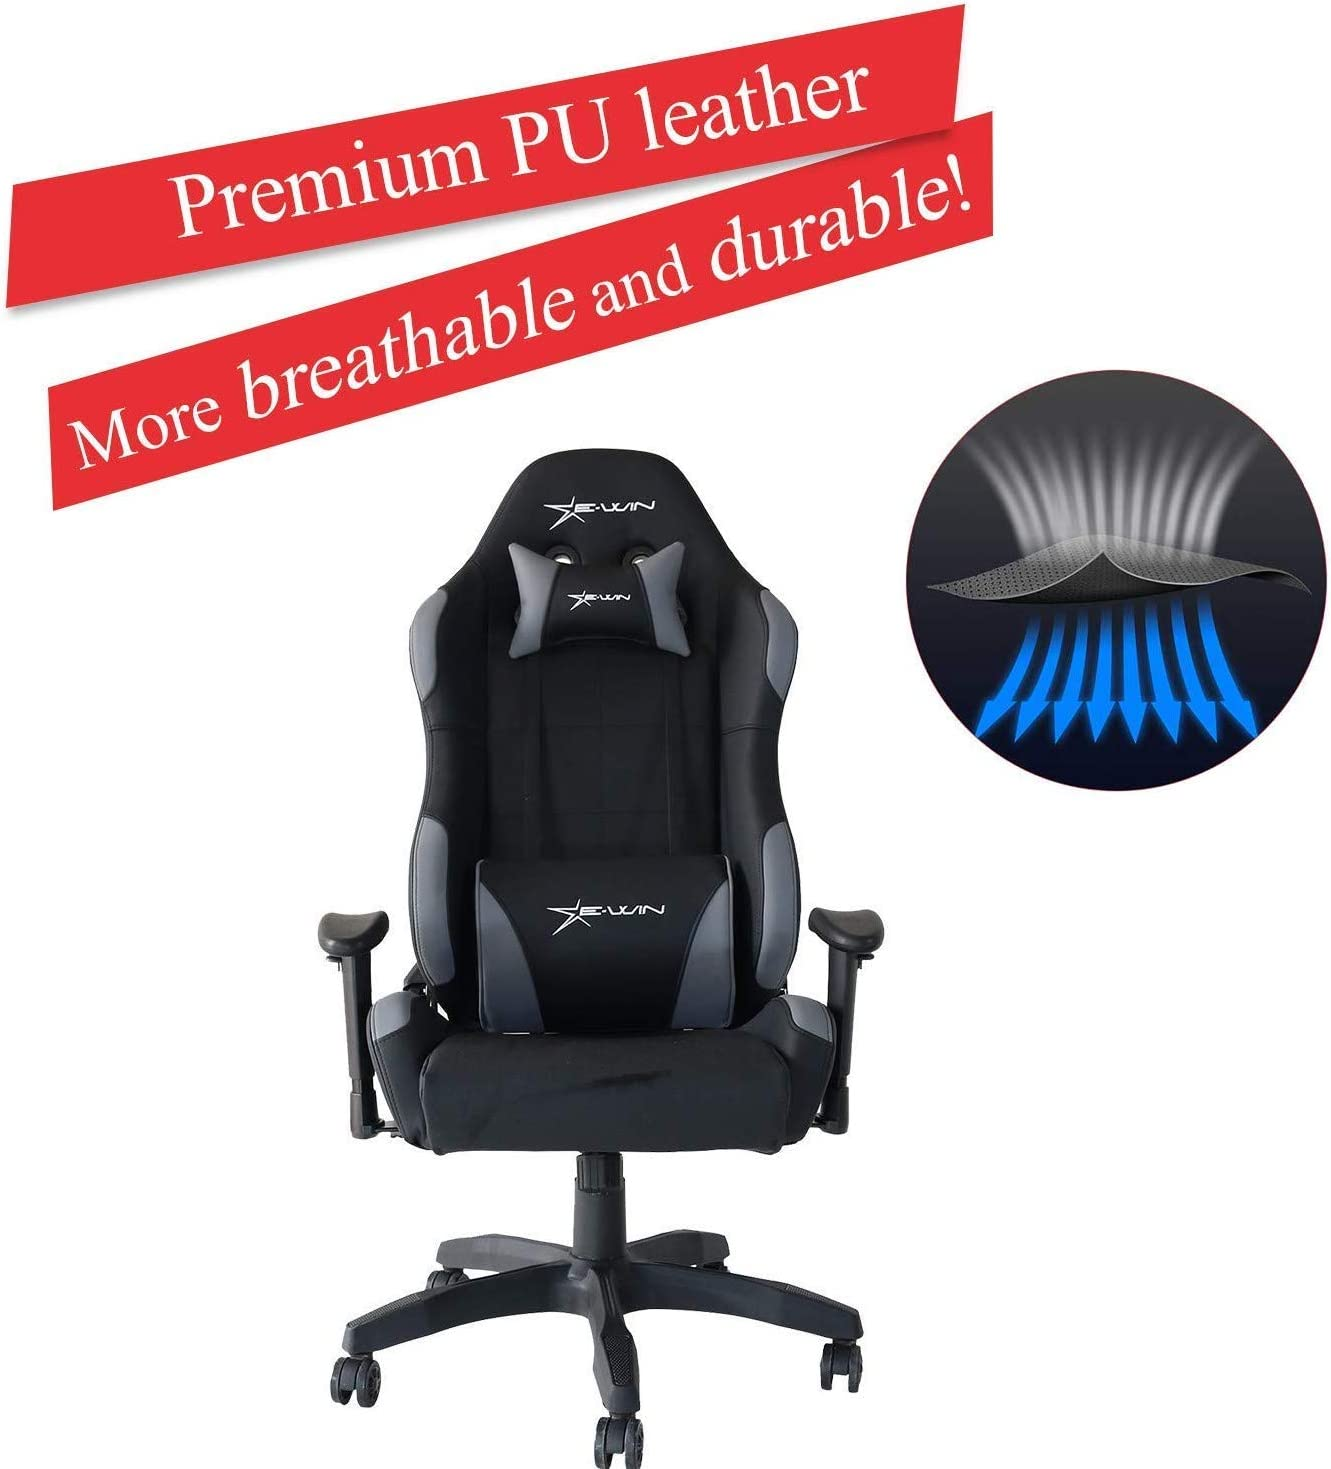 E-WIN Gaming Racing Chair 330lb Adjustable Tilt Back Angle and Armrests Ergonomic High-Back Leather Executive Computer Desk Office Chair